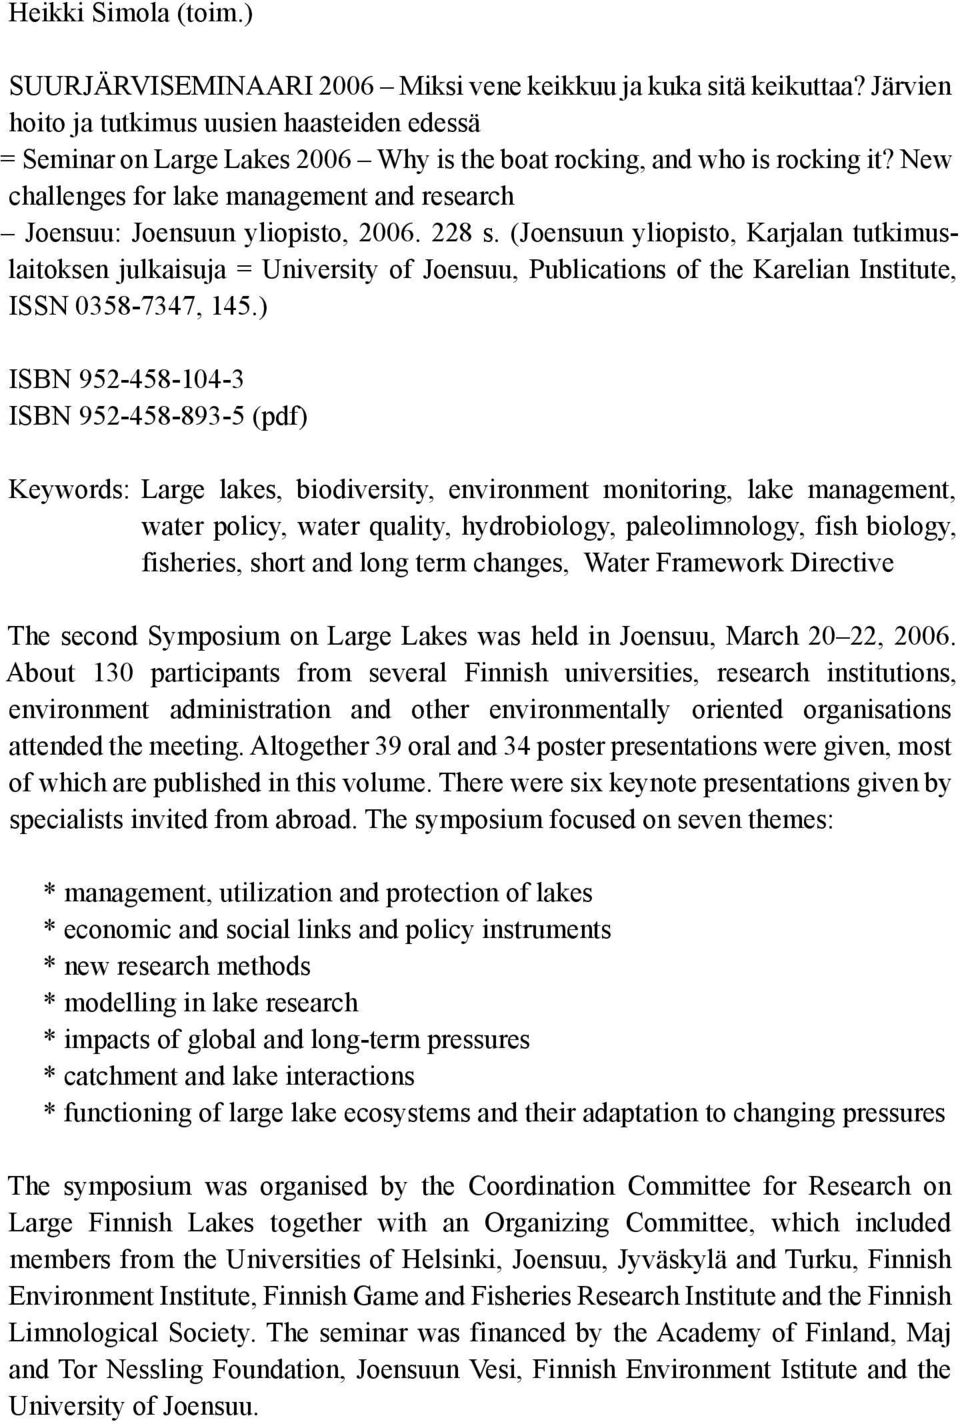 New challenges for lake management and research Joensuu: Joensuun yliopisto, 2006. 228 s.